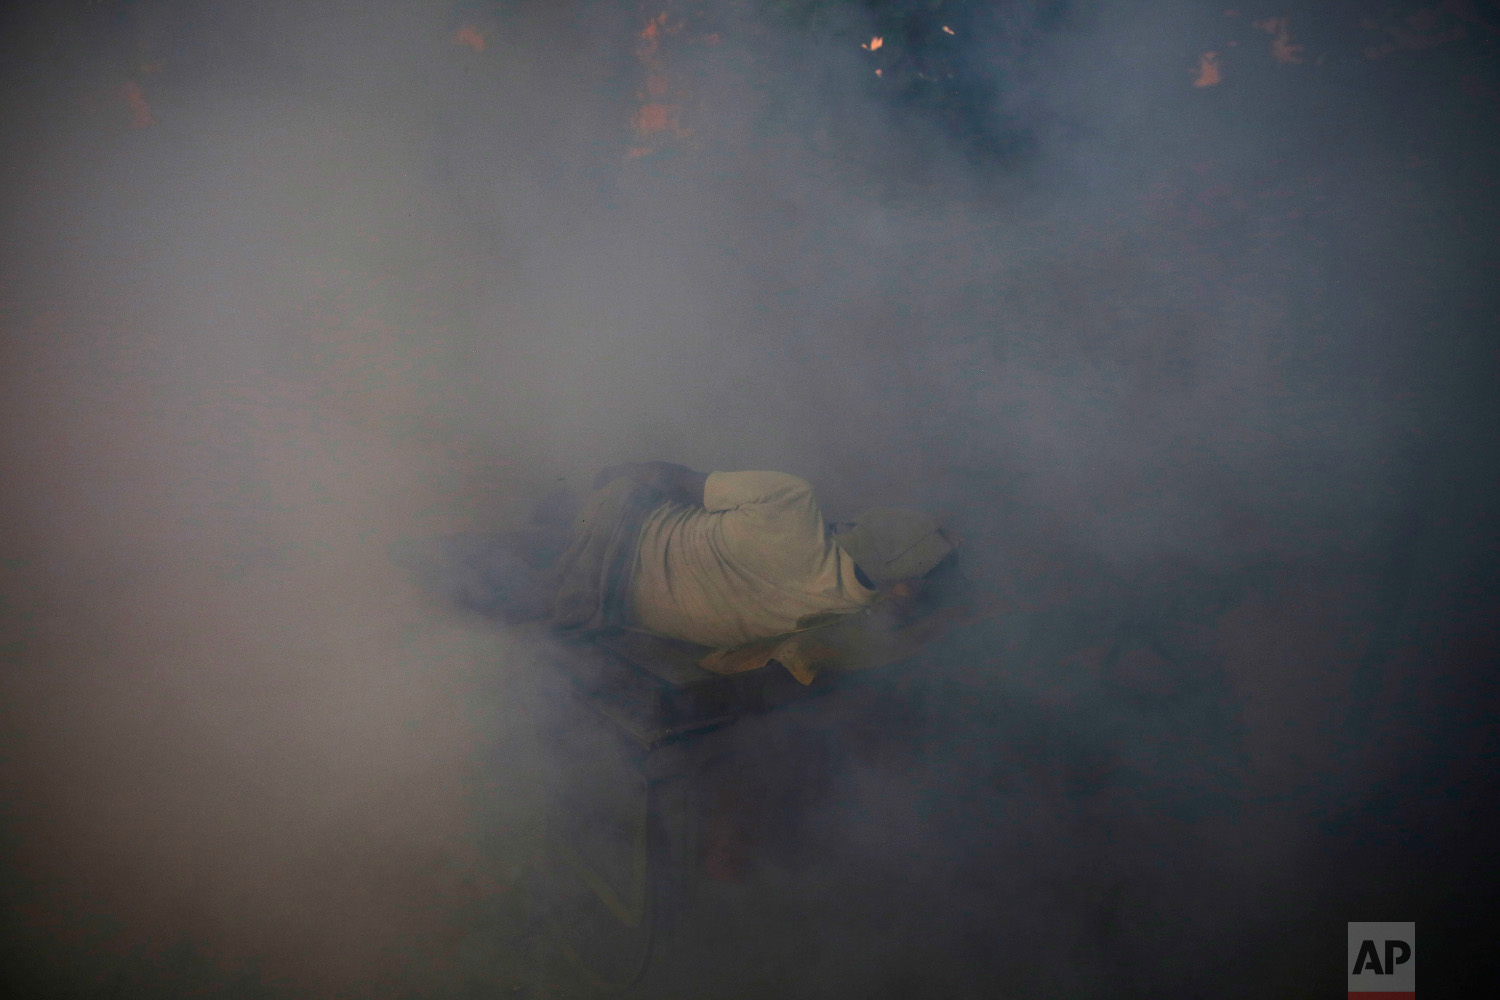 A man sleeps on a cart surrounded by smoke from fumigation, being carried out to prevent the spread of mosquito-borne diseases in Allahabad, India, on Sept. 13, 2018. (AP Photo/Rajesh Kumar Singh)